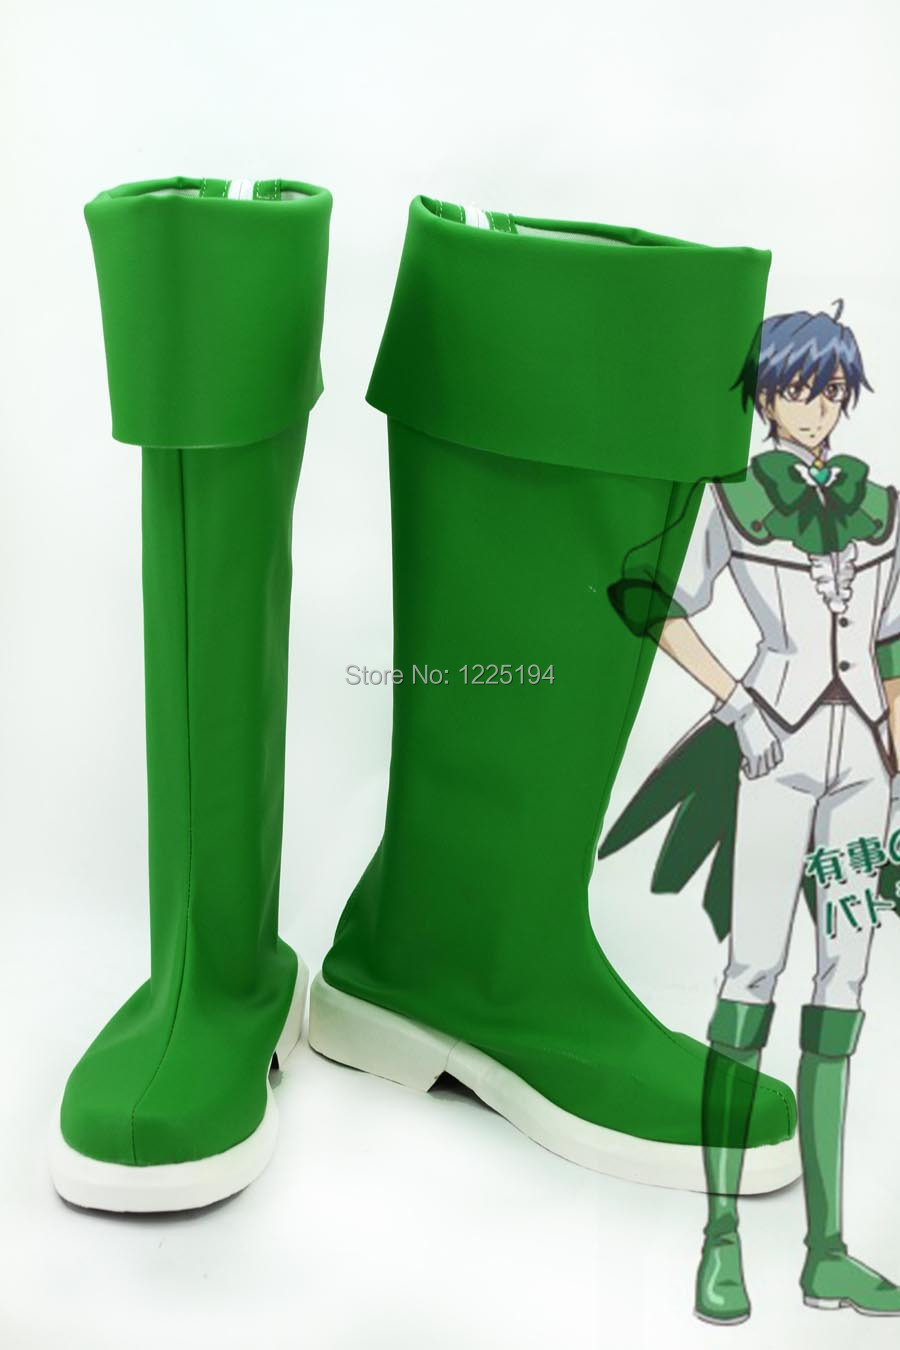 Cute High Earth Defense Club Love! Defense Club Atsushi Kinugawa High Boots Shoes Anime Cosplay EU US Size Custom Made Style AОдежда и ак�е��уары<br><br><br>Aliexpress